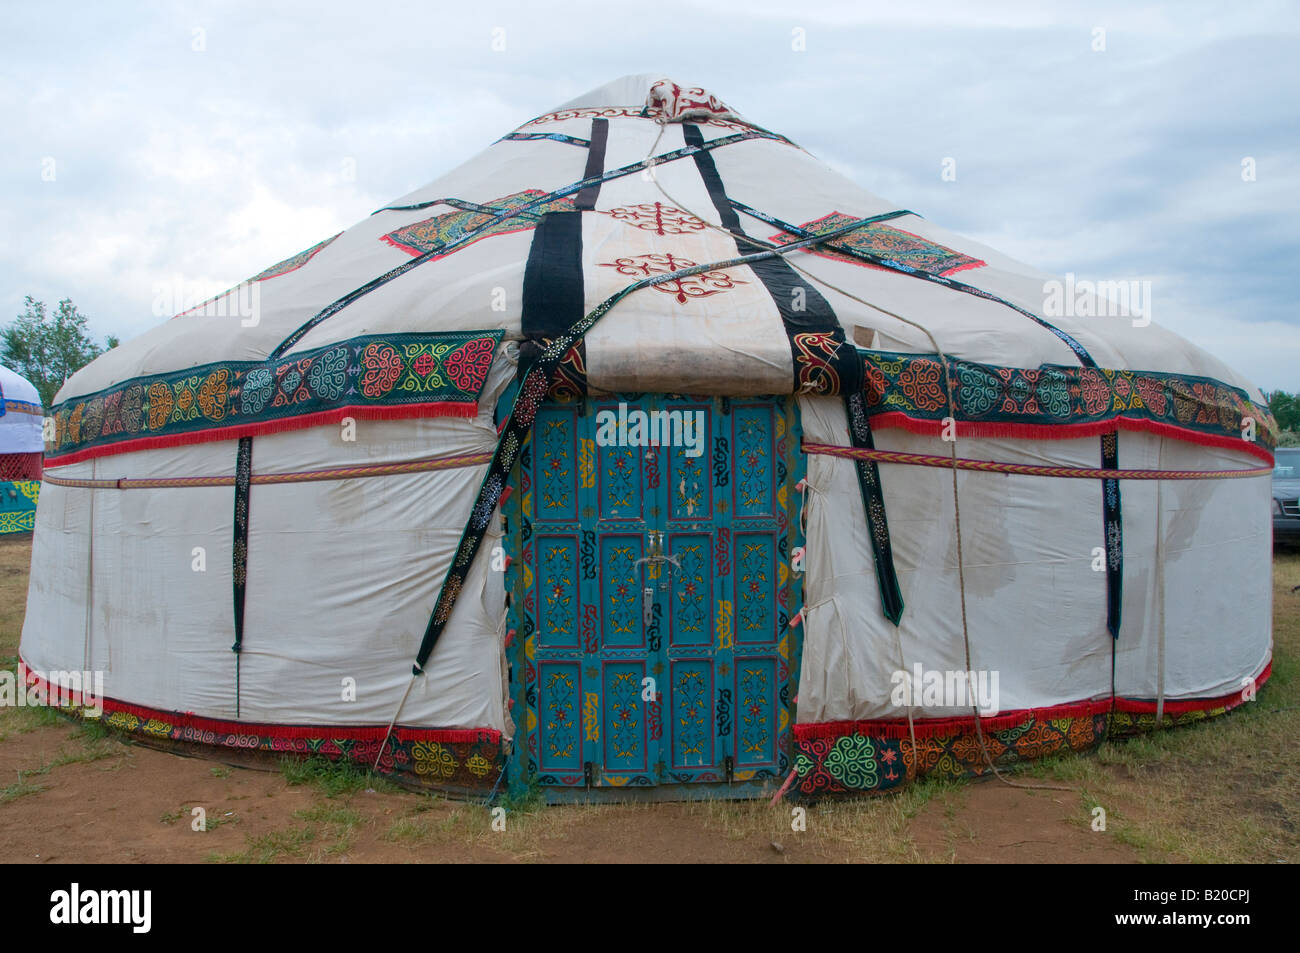 A traditional portable Yurt round tent covered with skins or felt and used as a dwelling by nomads in Central Asia & A traditional portable Yurt round tent covered with skins or felt ...